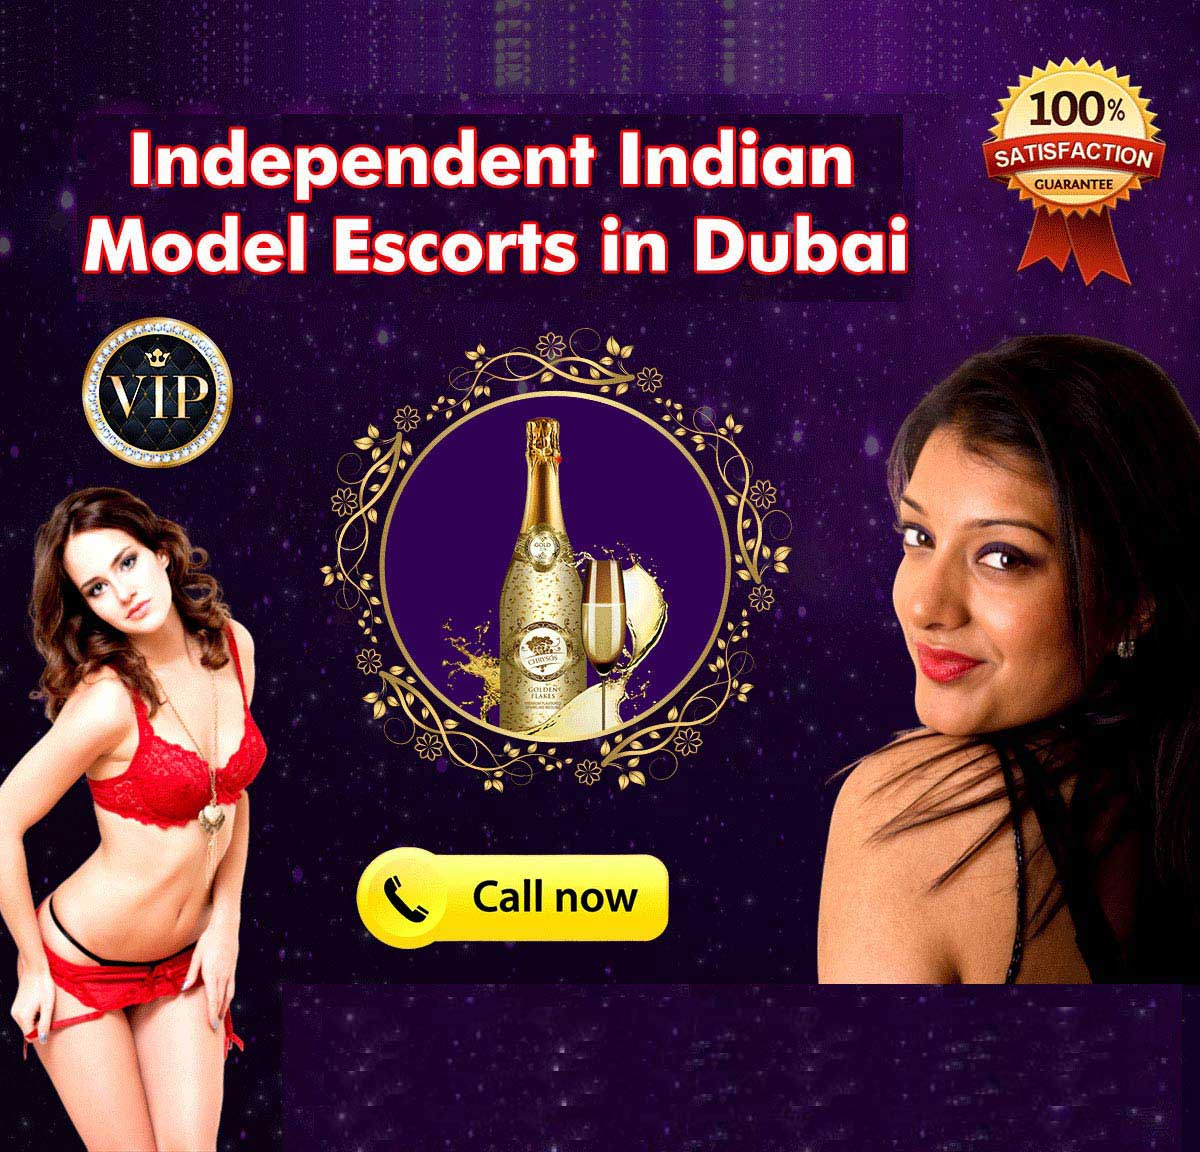 Elite Indian Escort Dubai